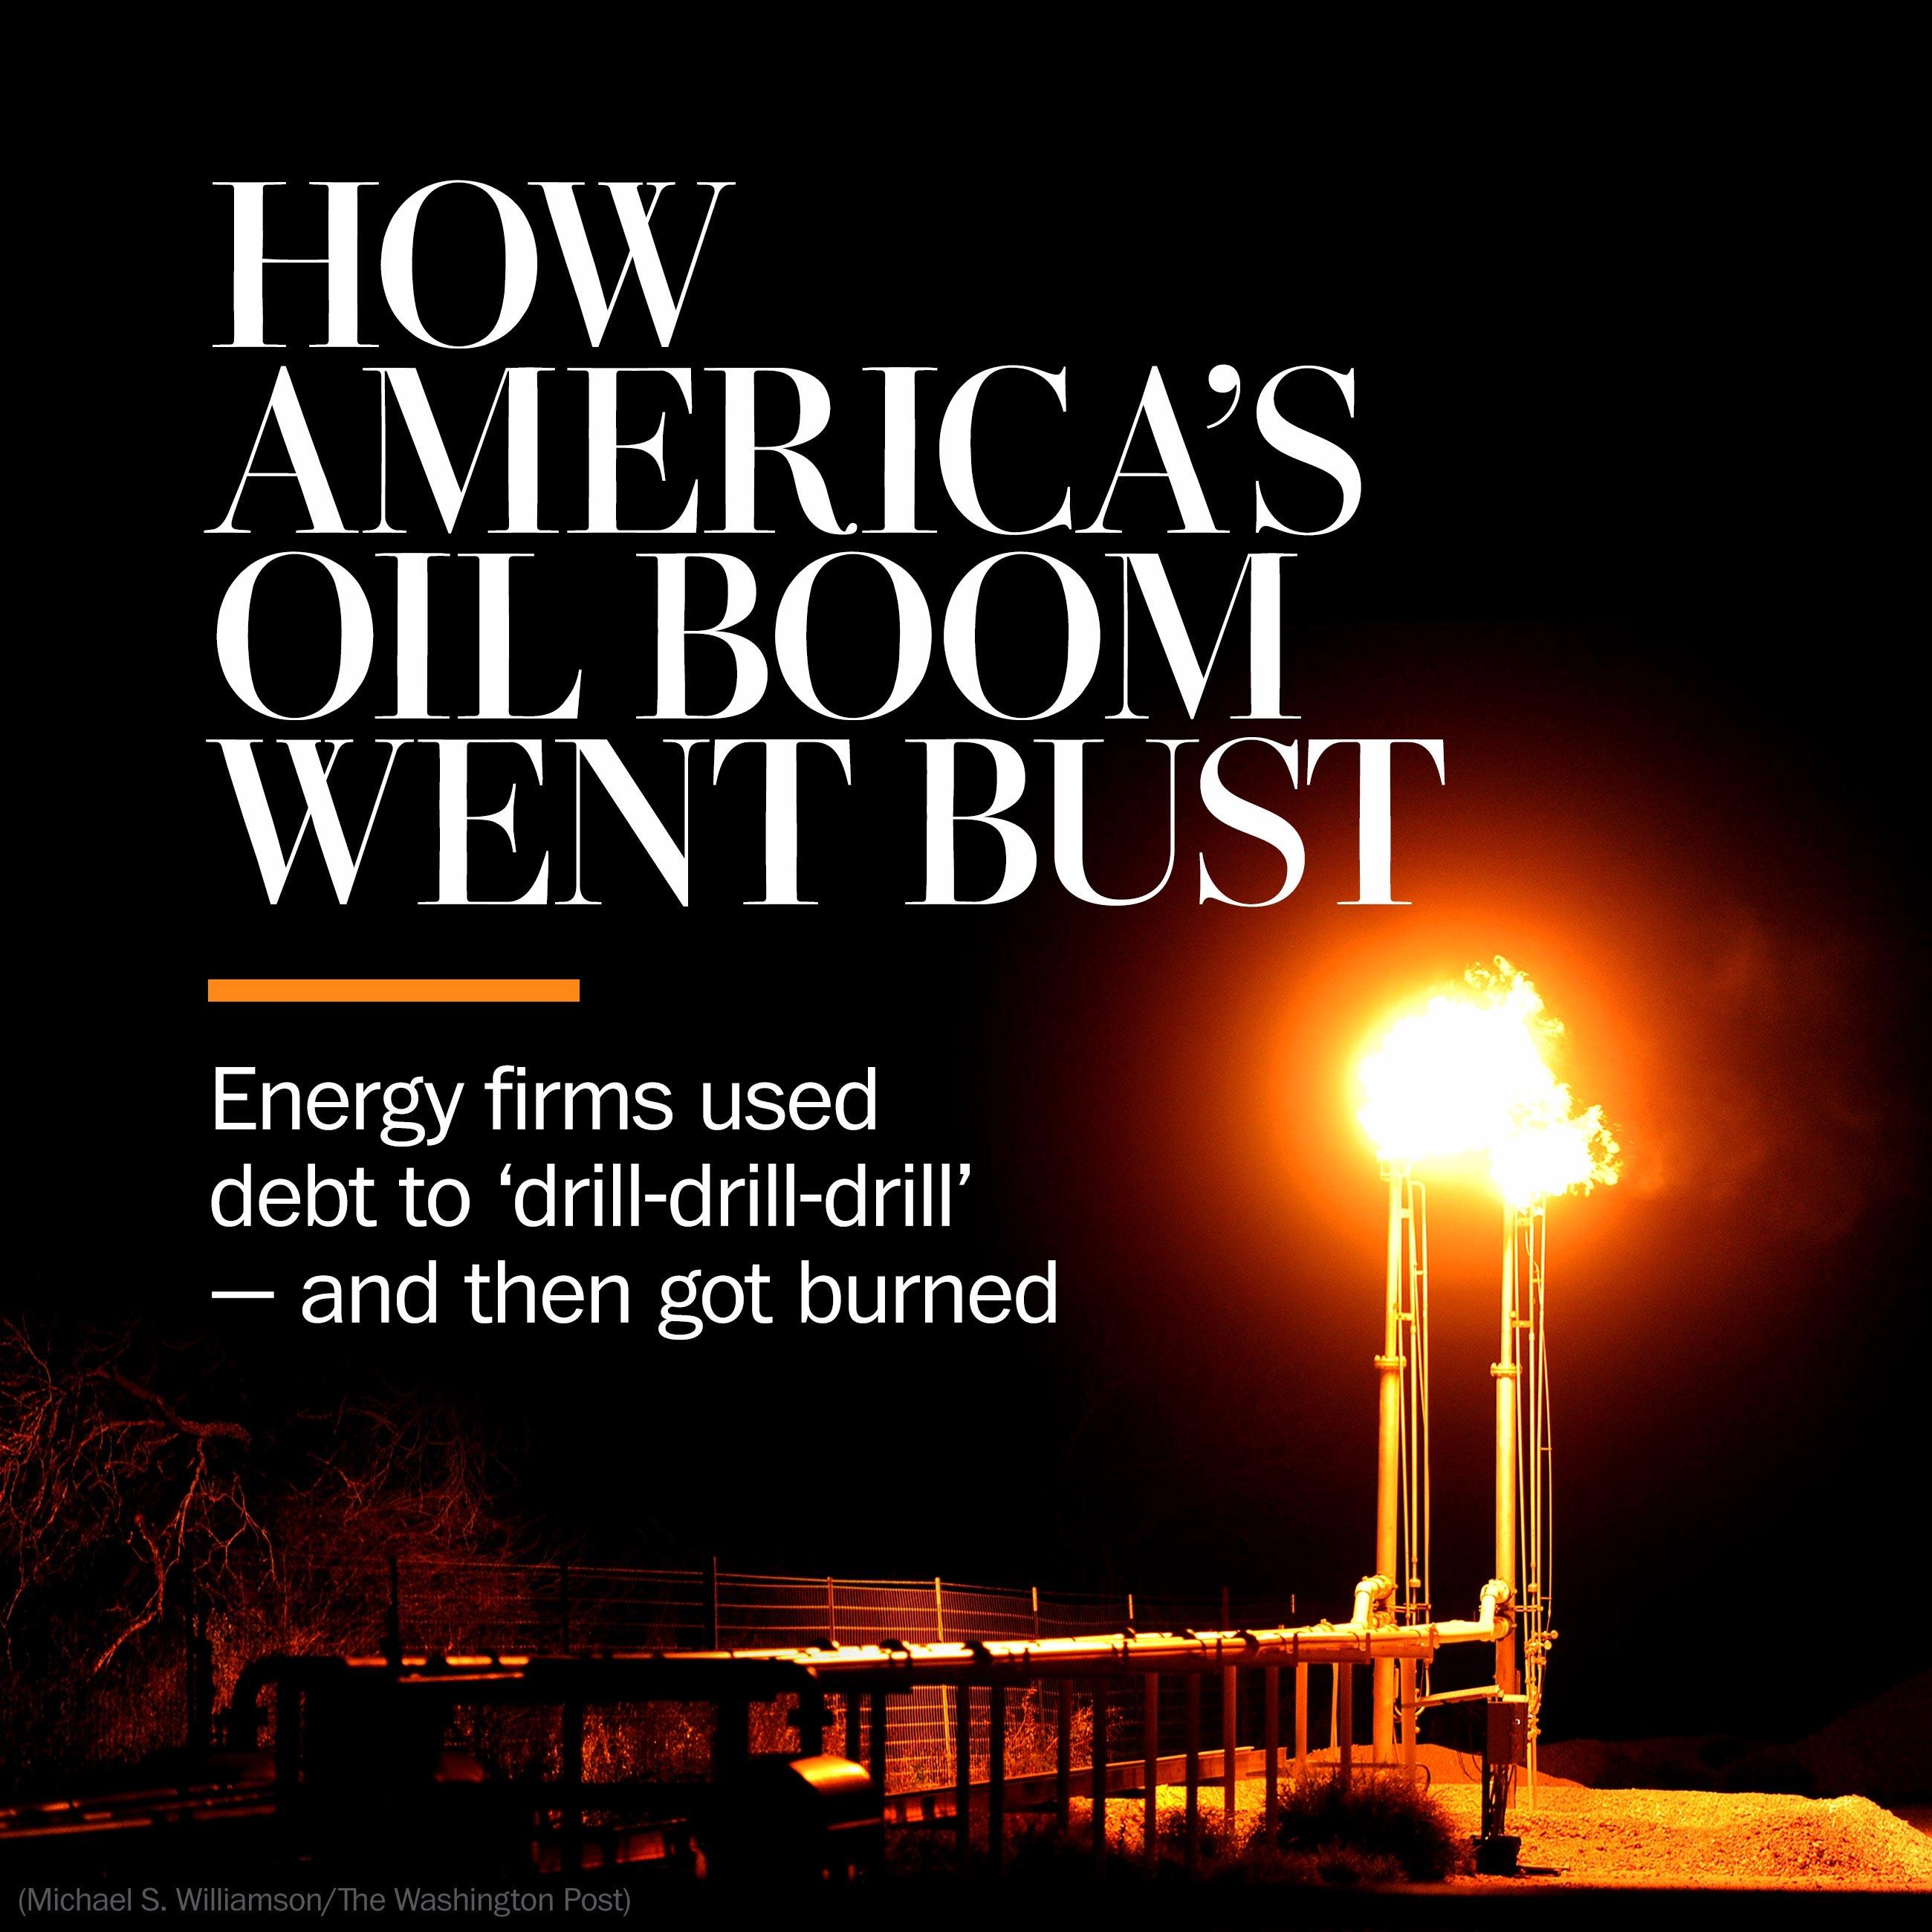 The big bust in the oil fields